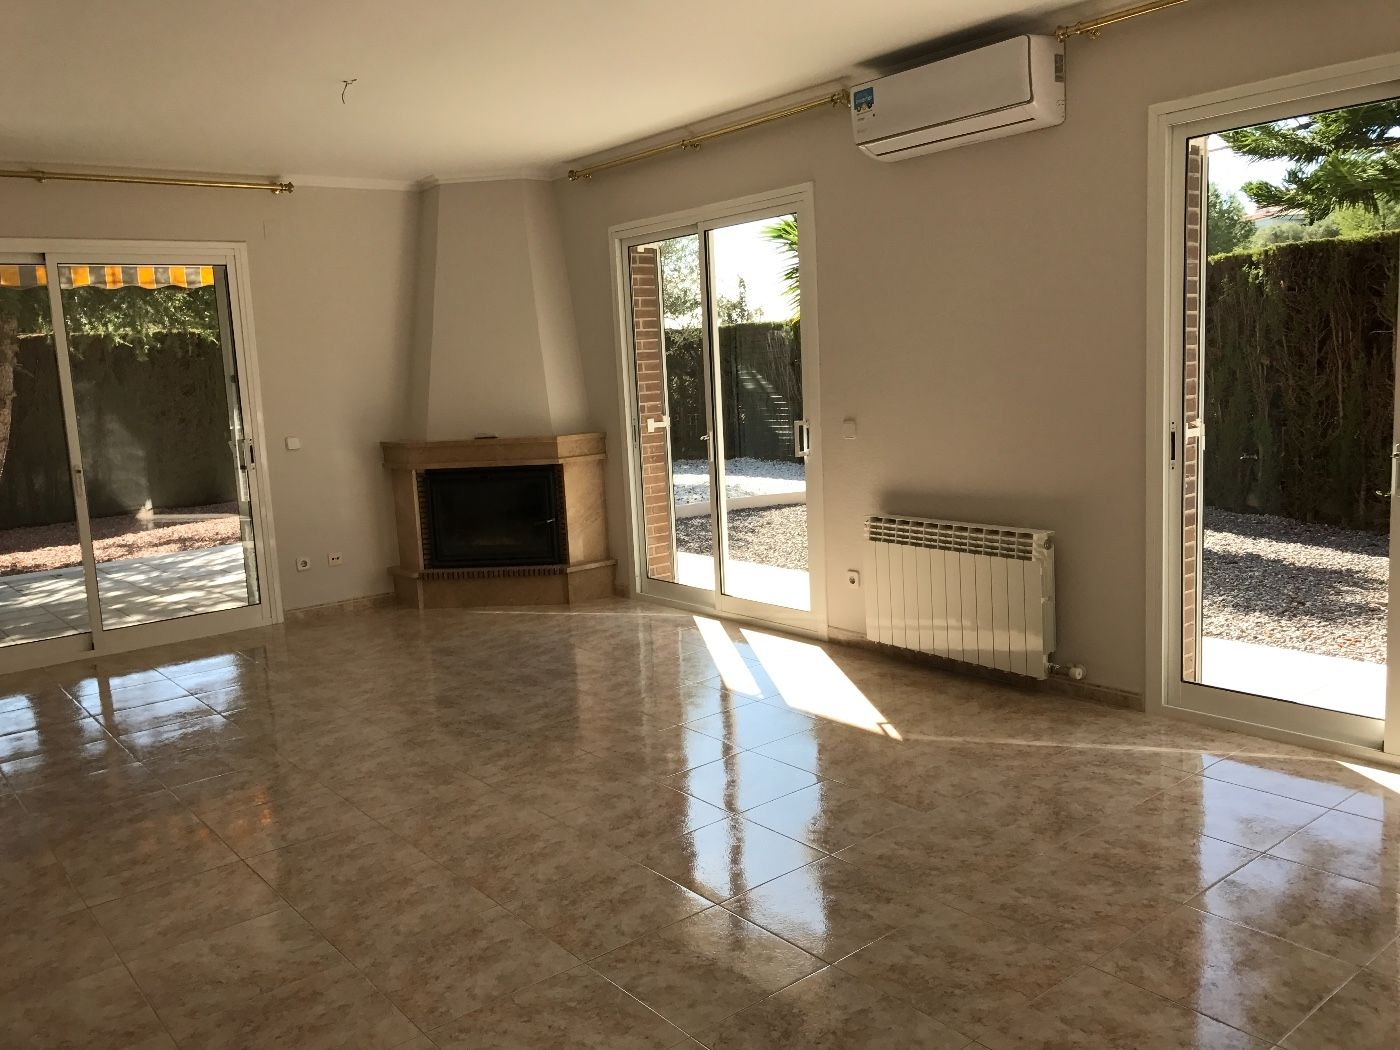 Rent Chalet in Carrer joan lamote de grignon (de), 11. Semi-nuevo, con piscina